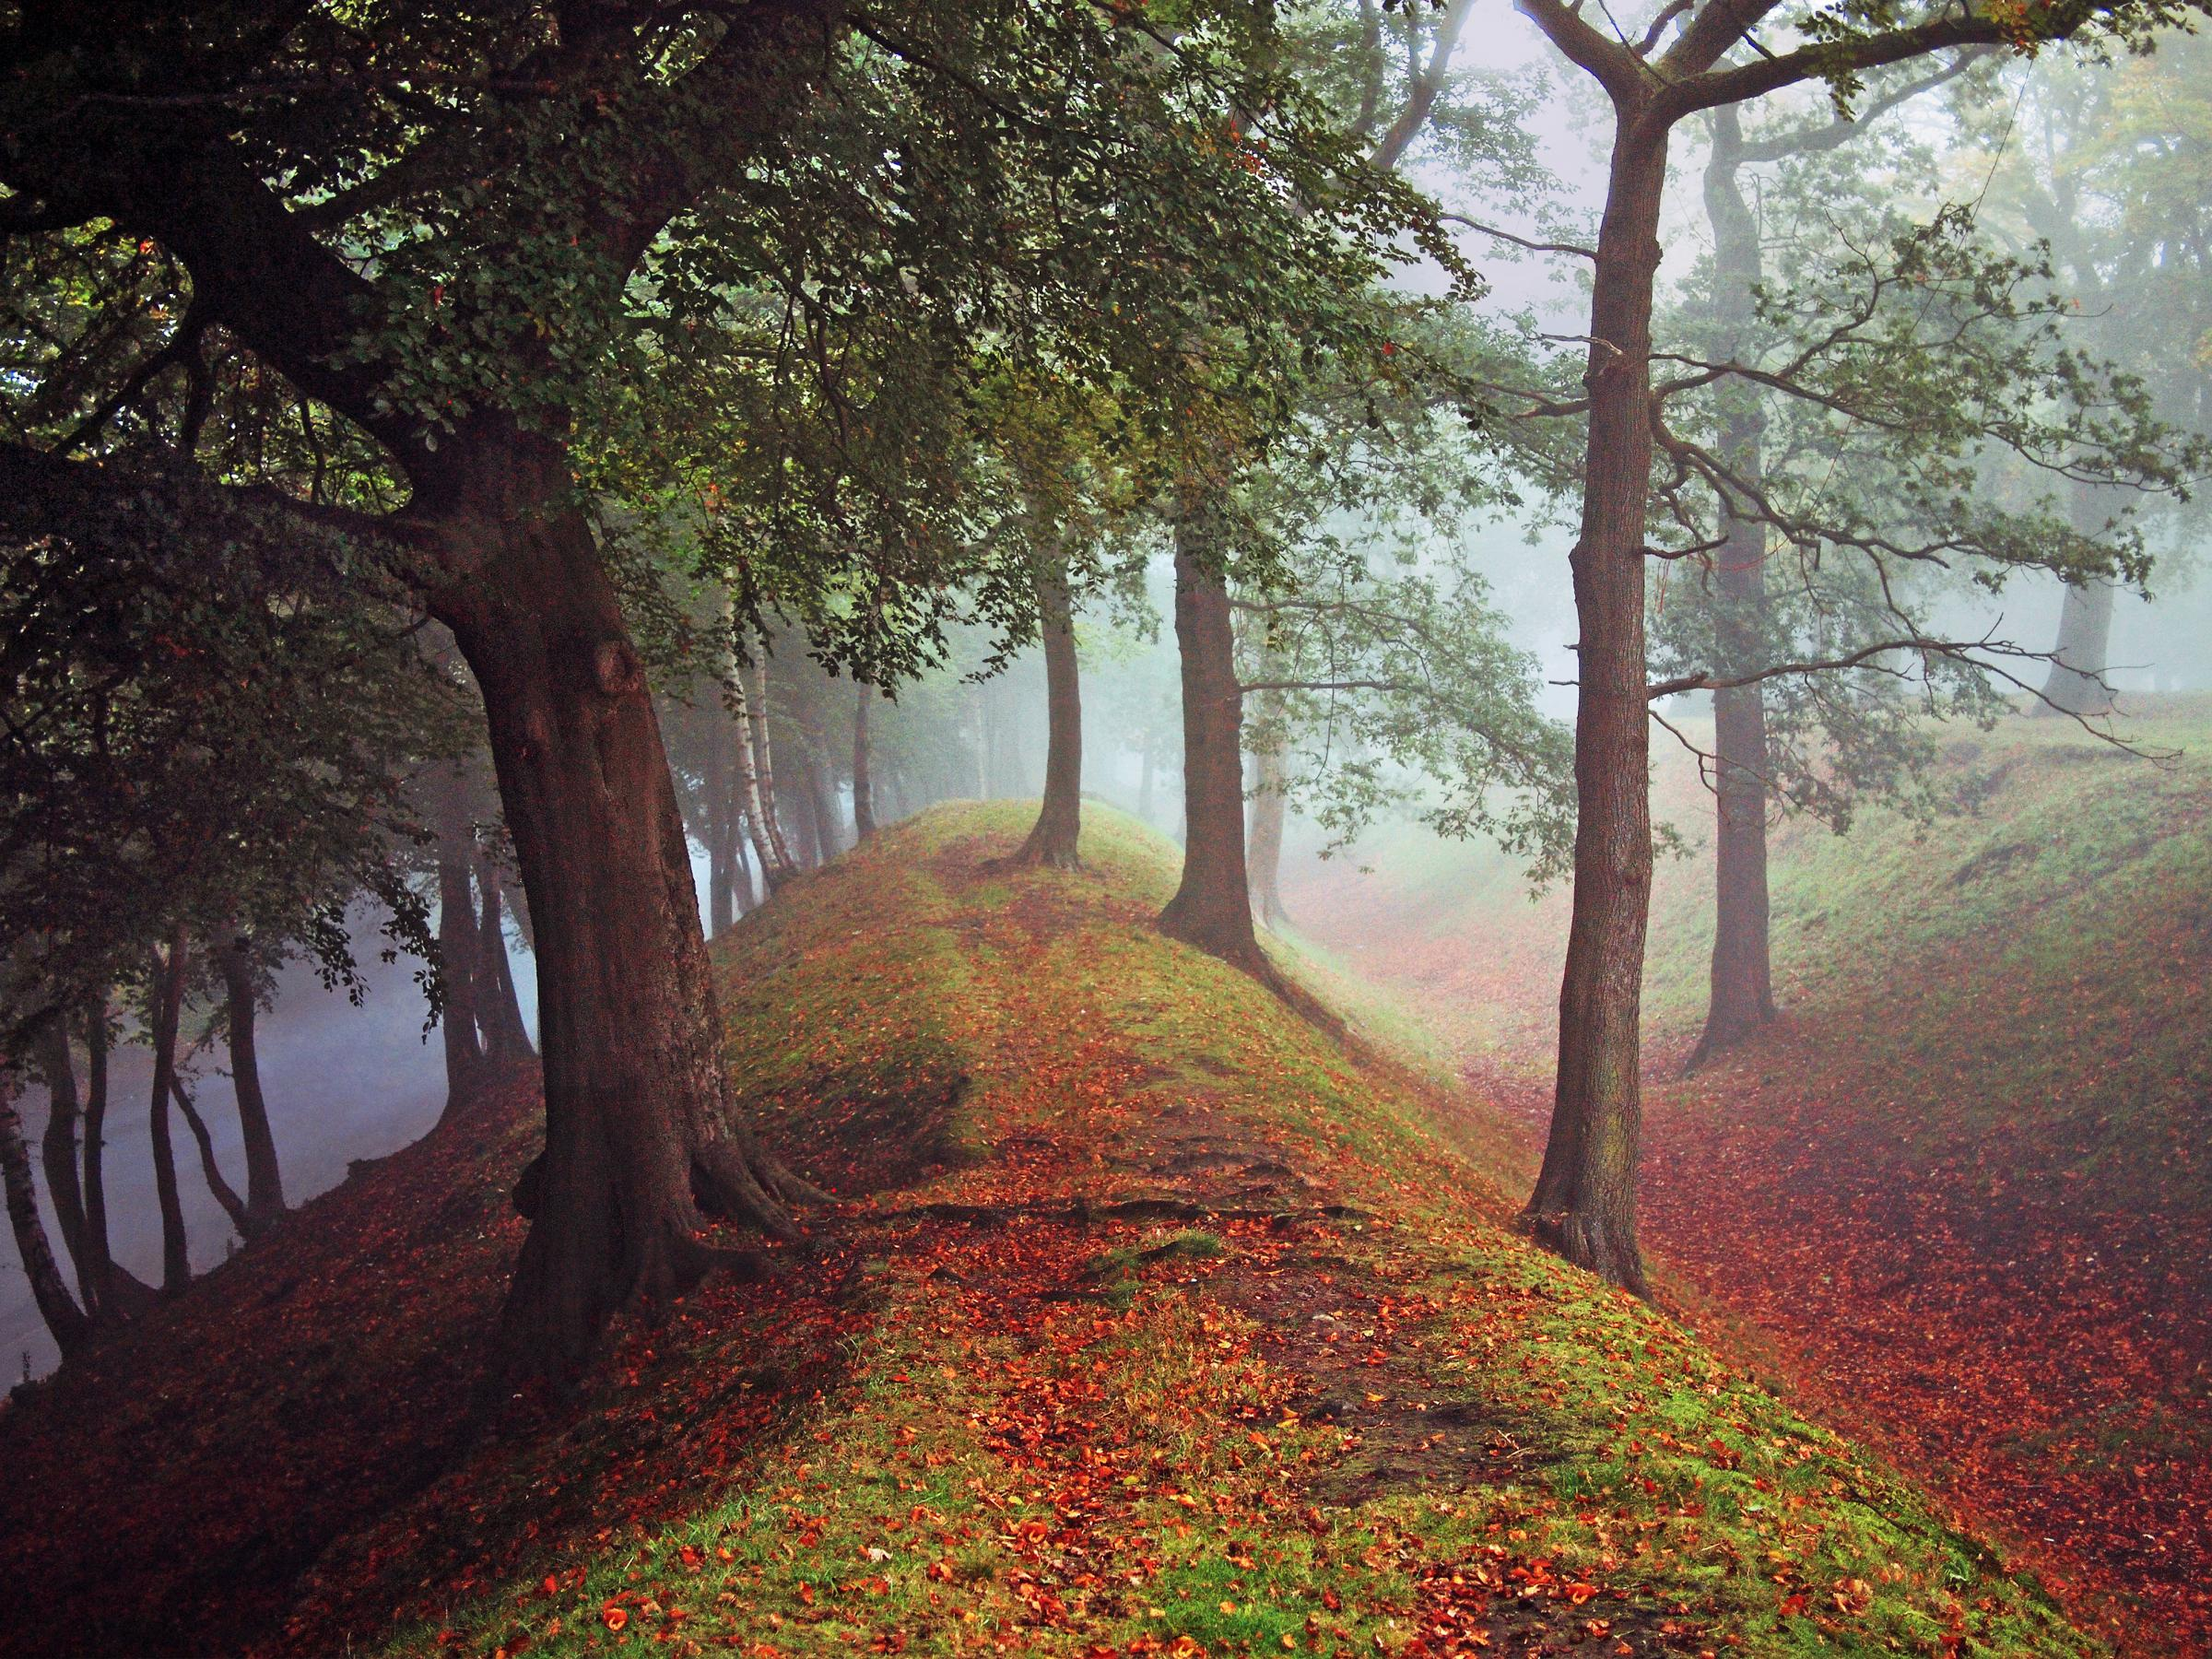 The Antonine Wall: Line on the landscape